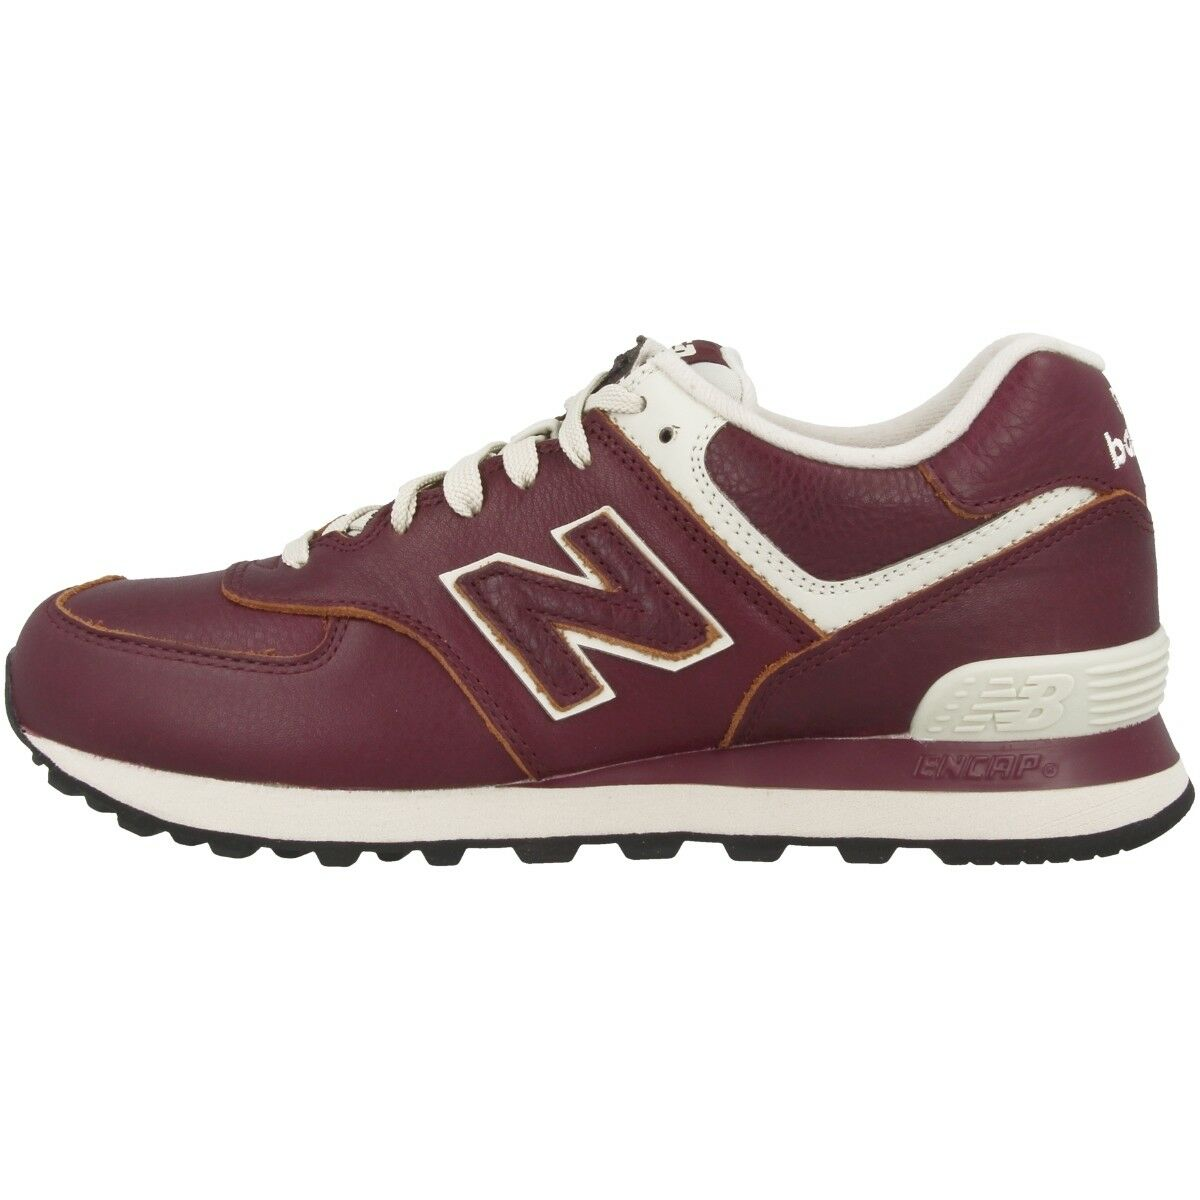 New Balance Freizeit ML 574 LUD Zapatos burgundy powder ML574LUD Freizeit Balance Sneaker M574 410 147319